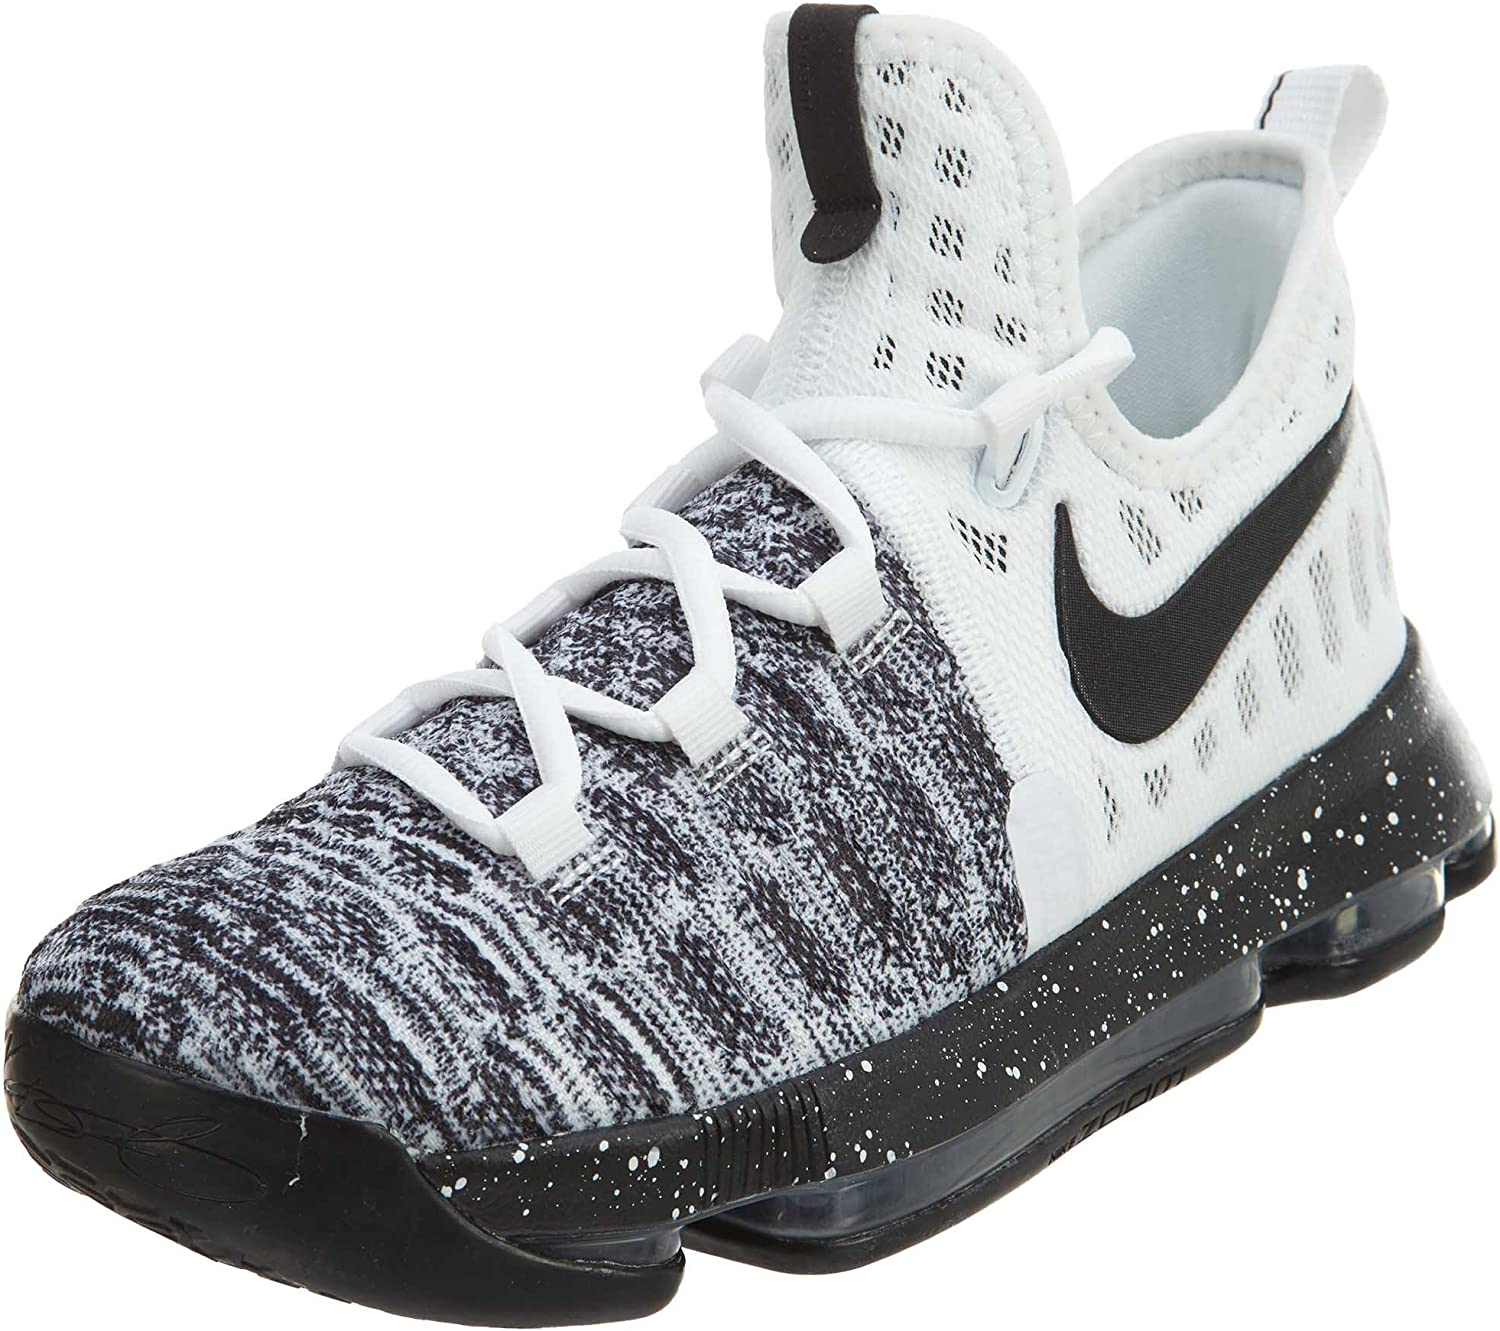 preocupación extinción debajo  Nike Zoom KD 9 (GS) White/Black (Oreo) (6.5Y): Amazon.ca: Shoes & Handbags